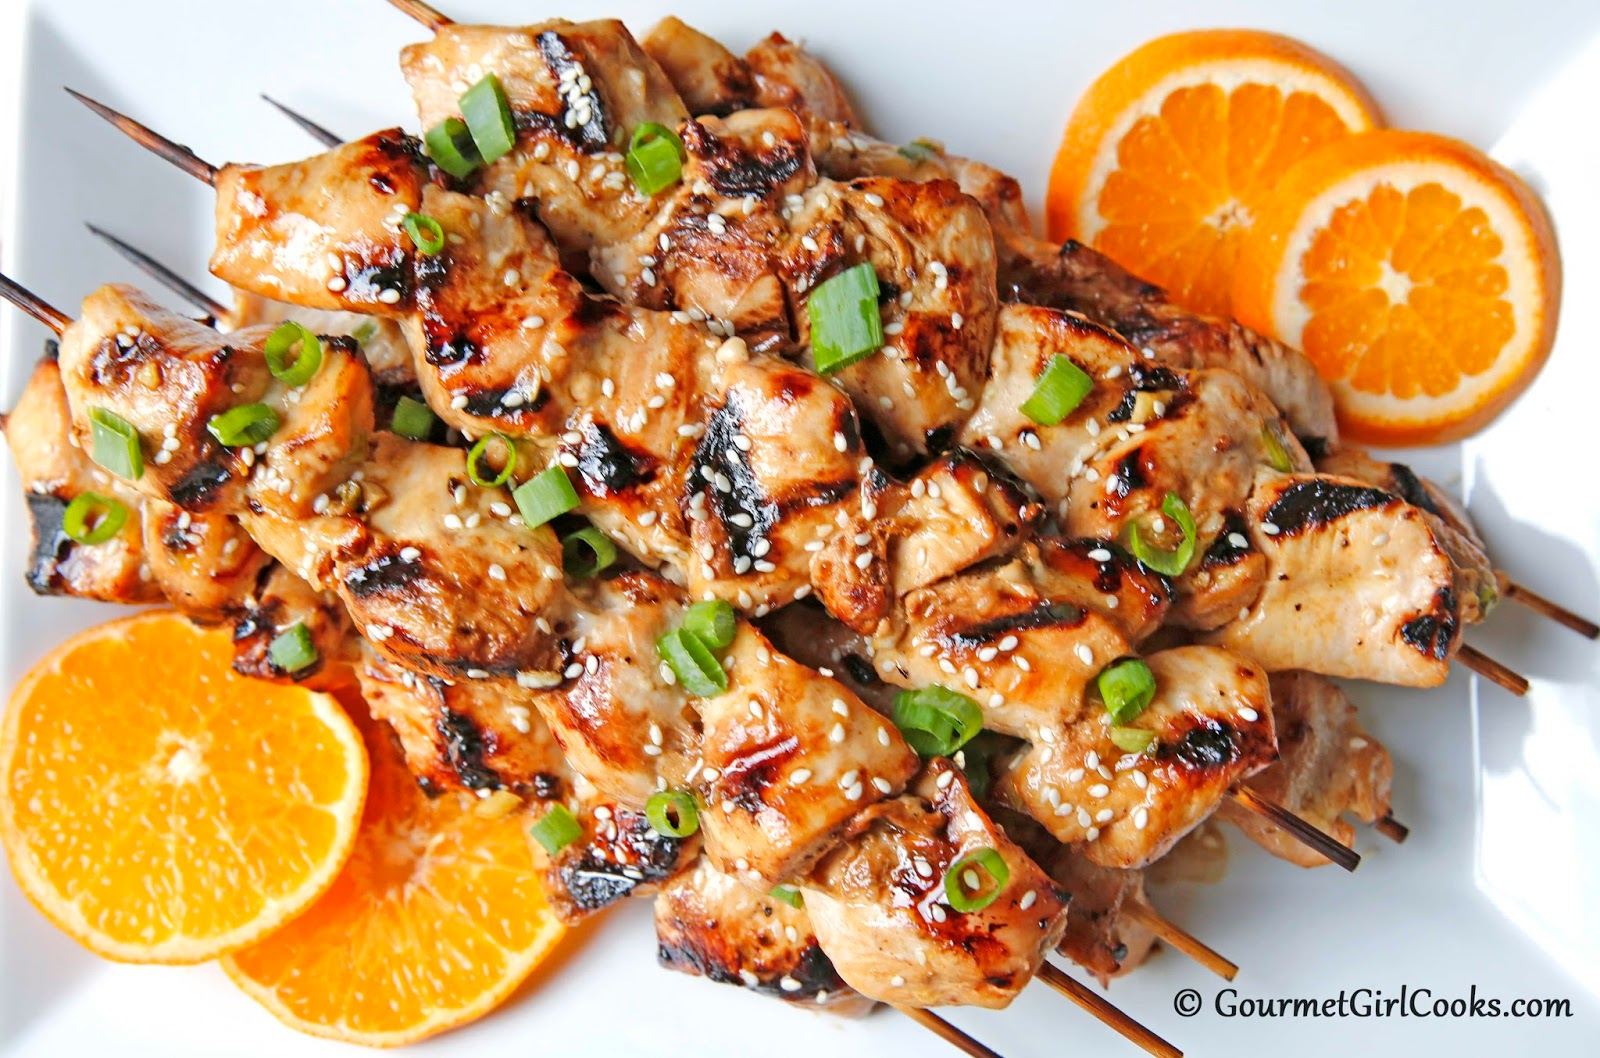 Gourmet Girl Cooks Grilled Asian Style Chicken Kabobs